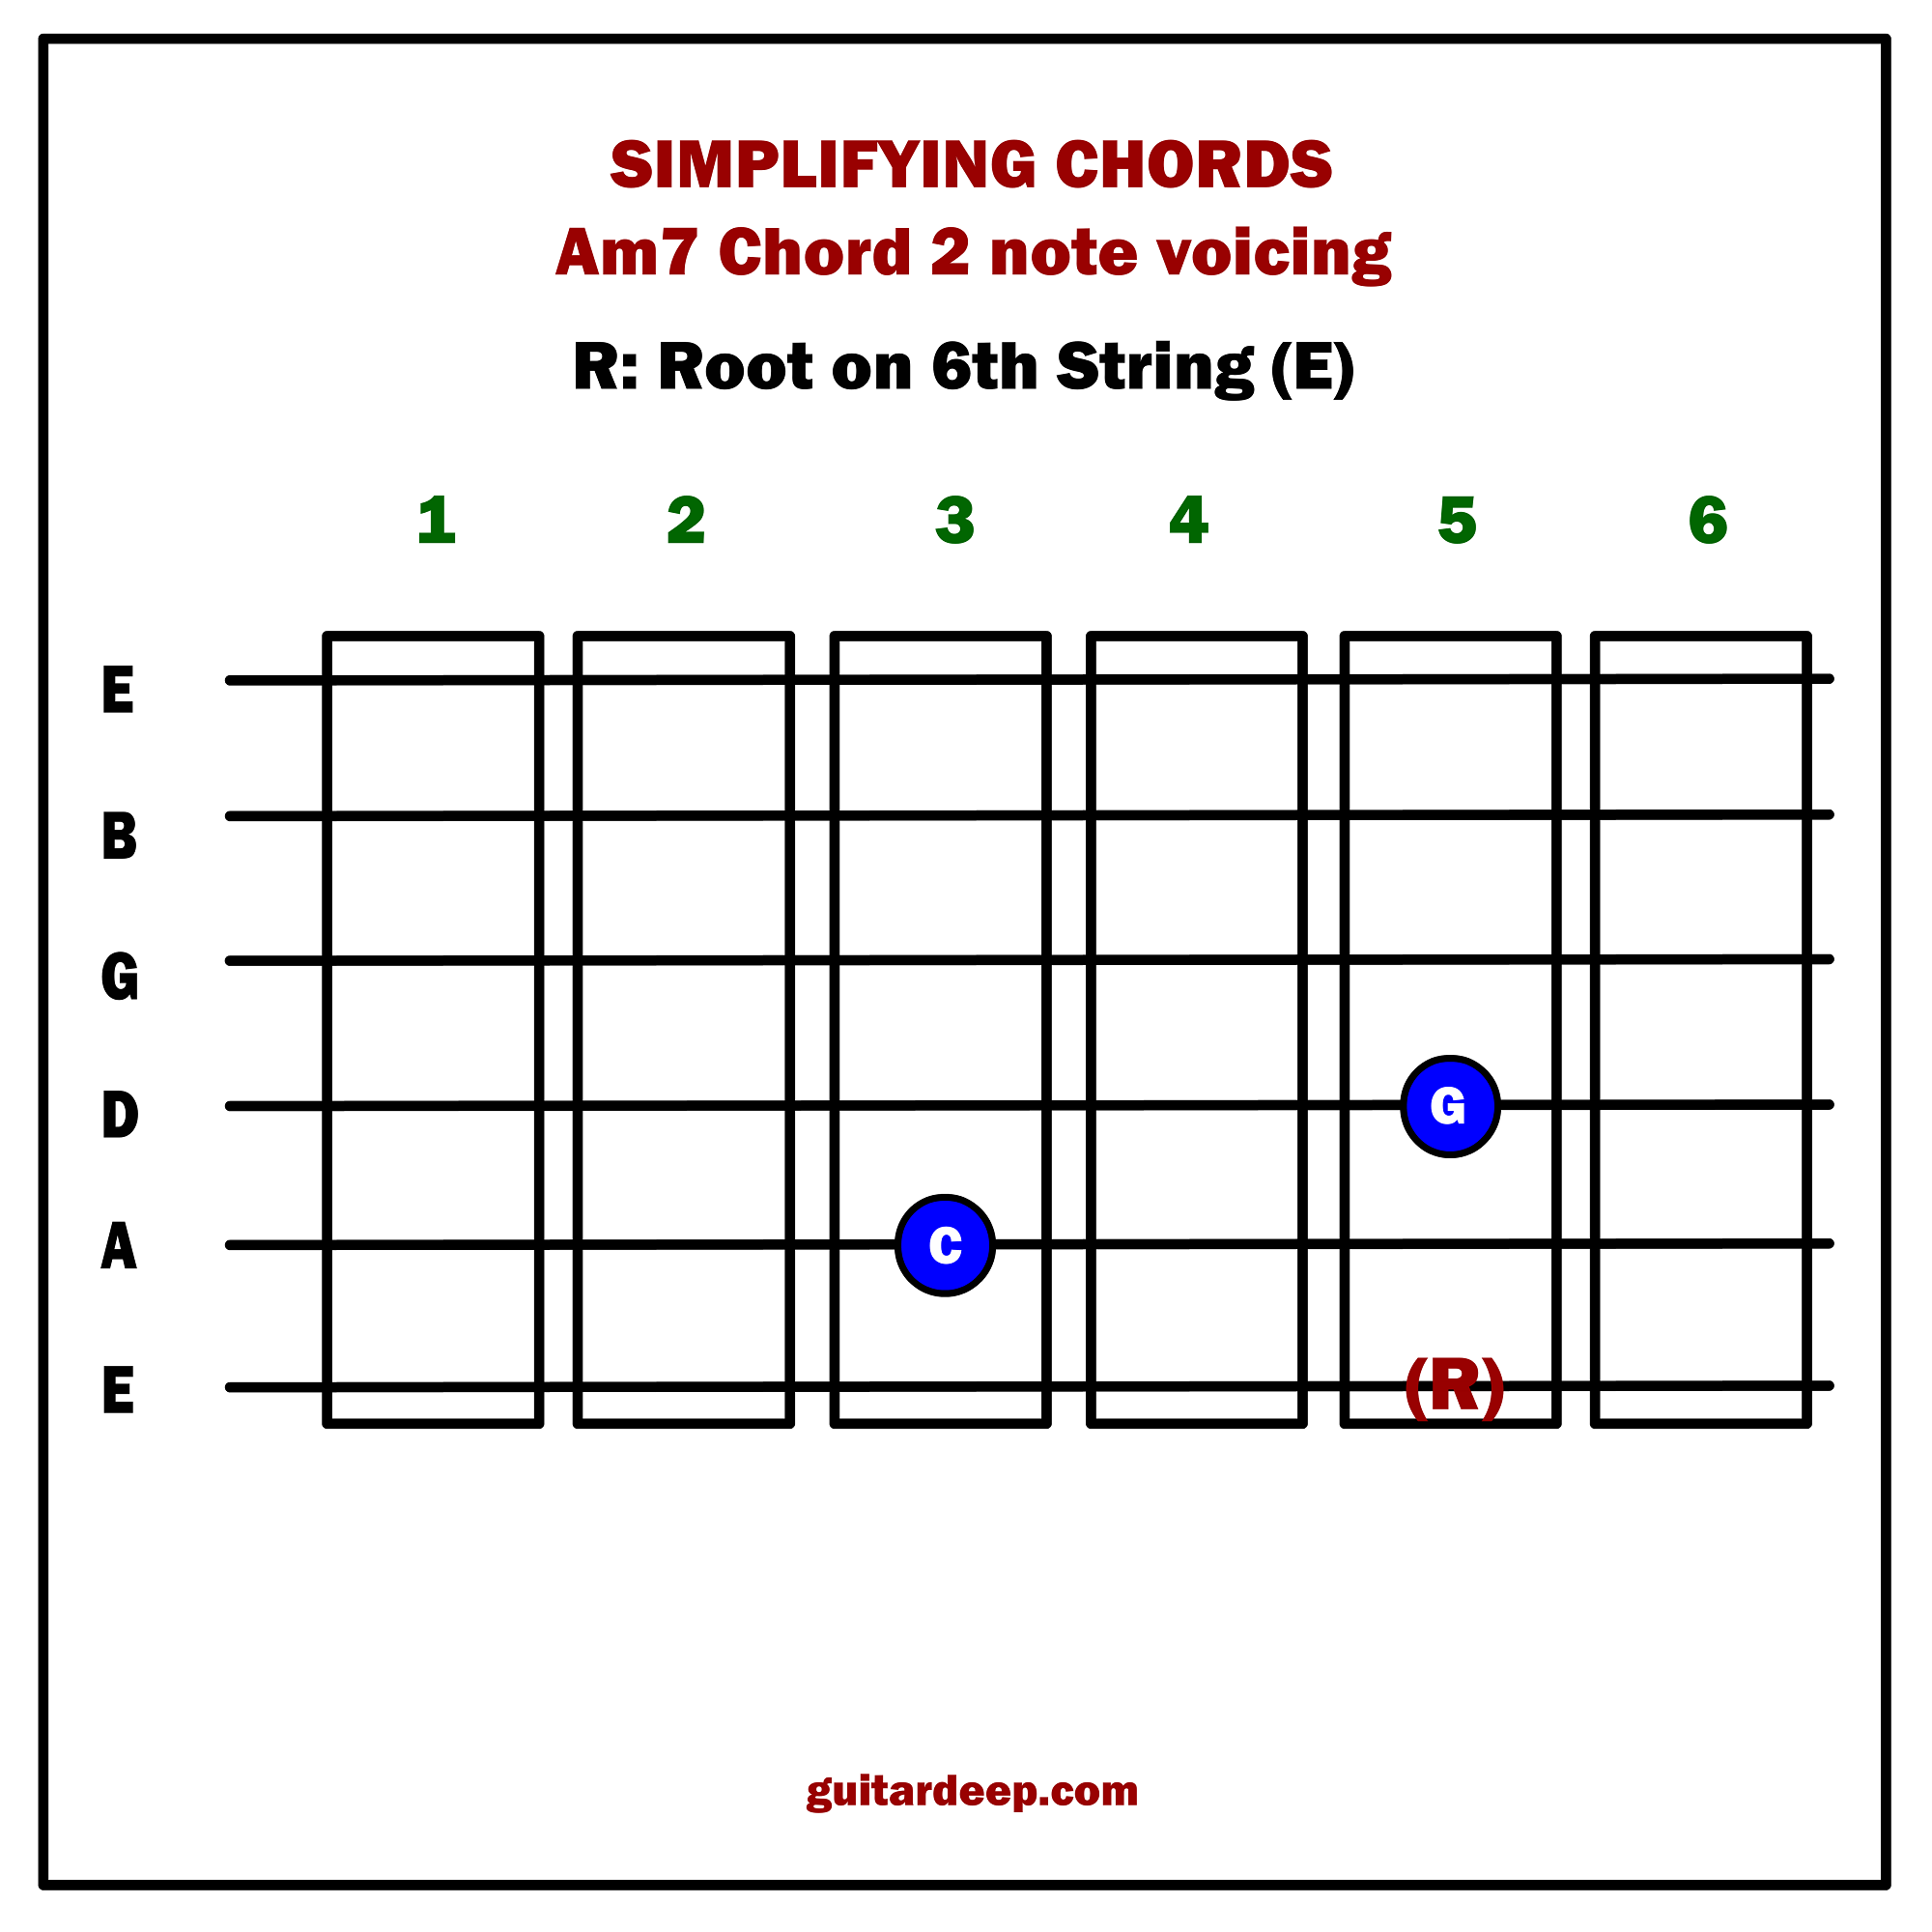 Lesson 07 Simplifying Guitar Chords Part 02 Guitar Deep